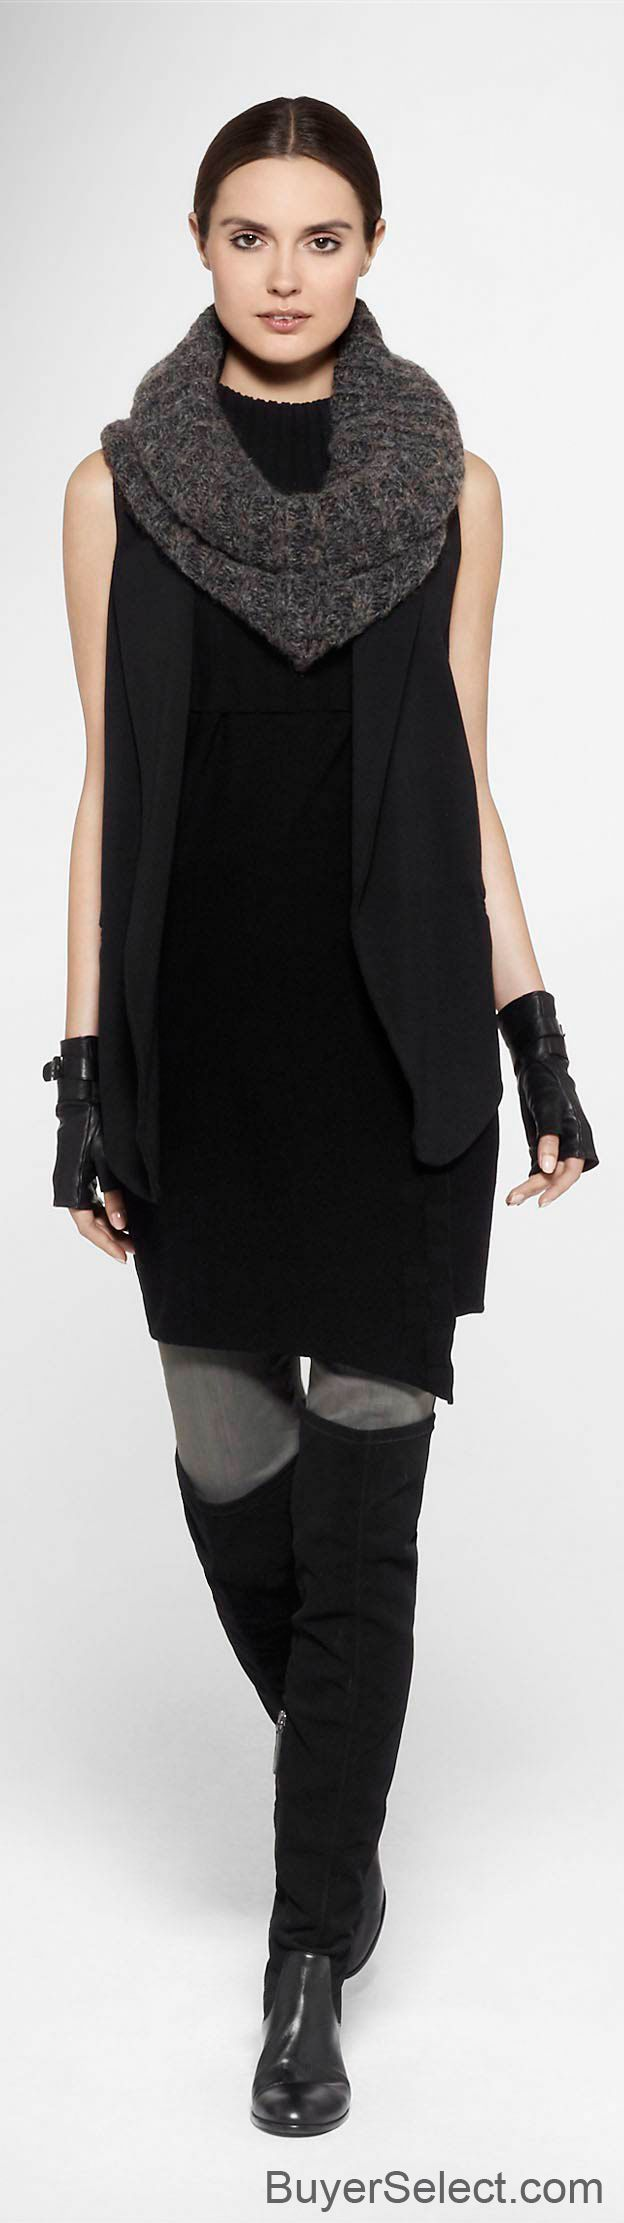 Sara Pacini Women's Designer Collection